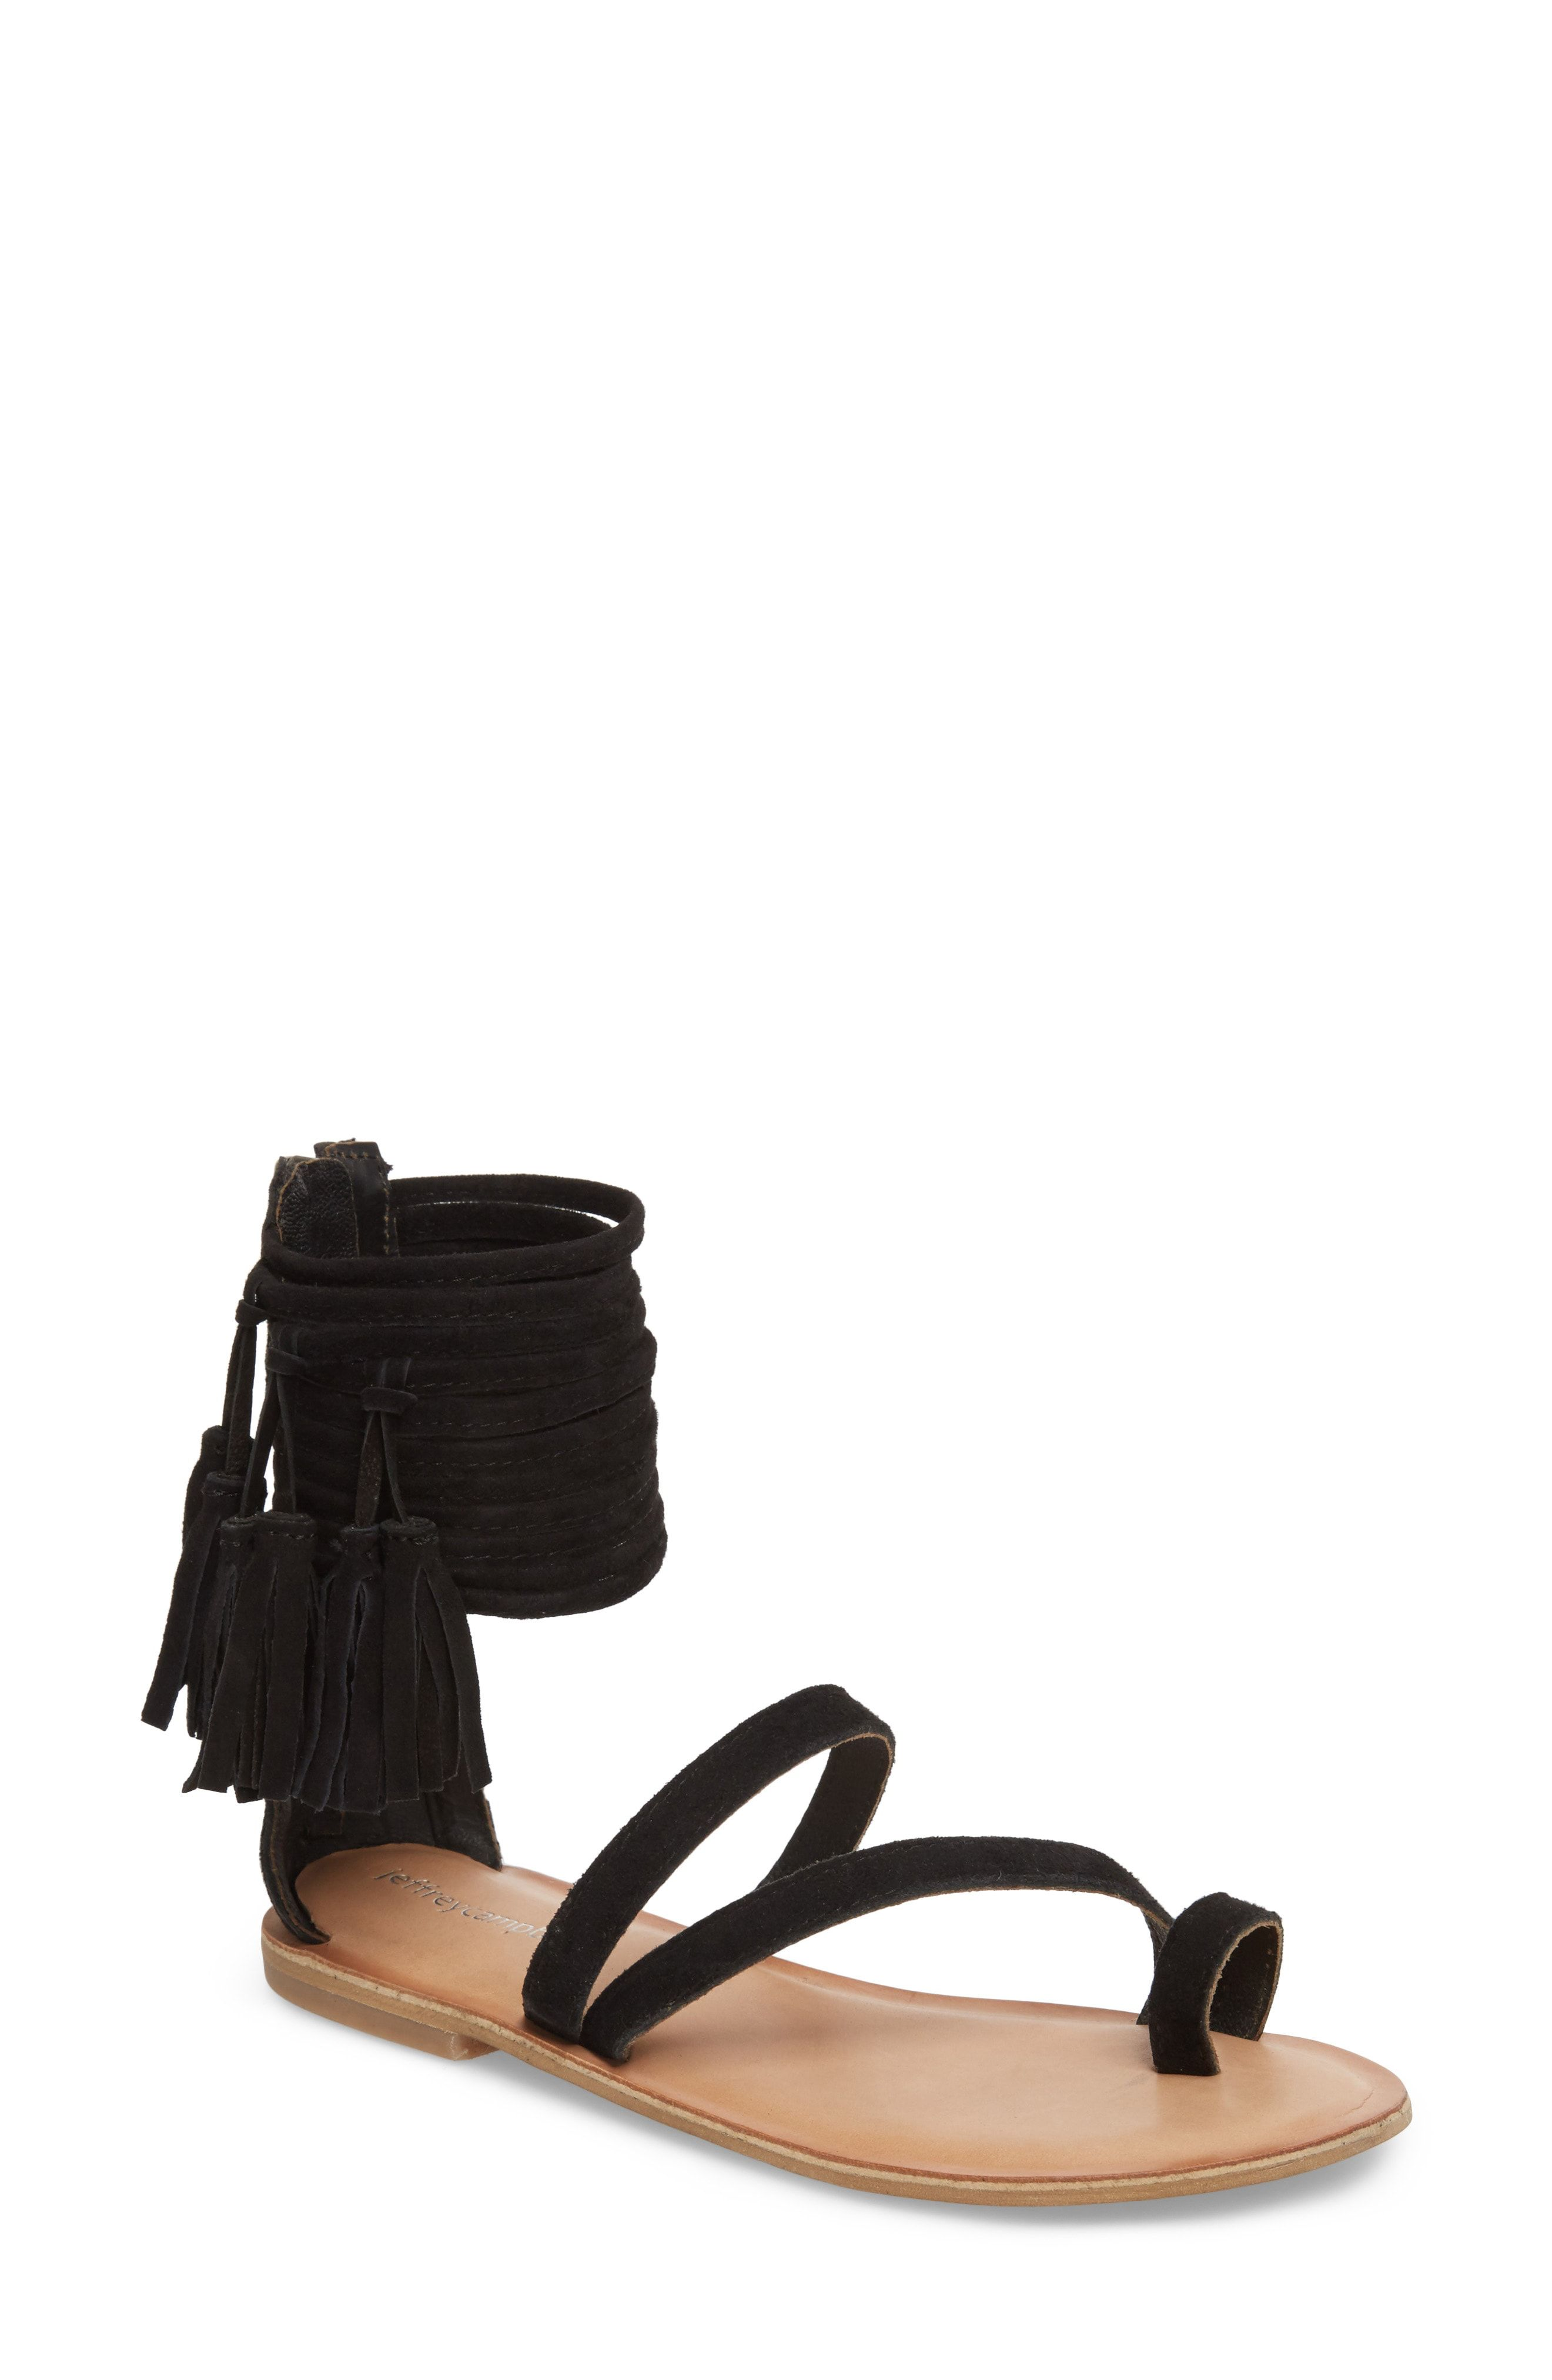 301578d325a Jeffrey Campbell Glady Sandal available at  Nordstrom